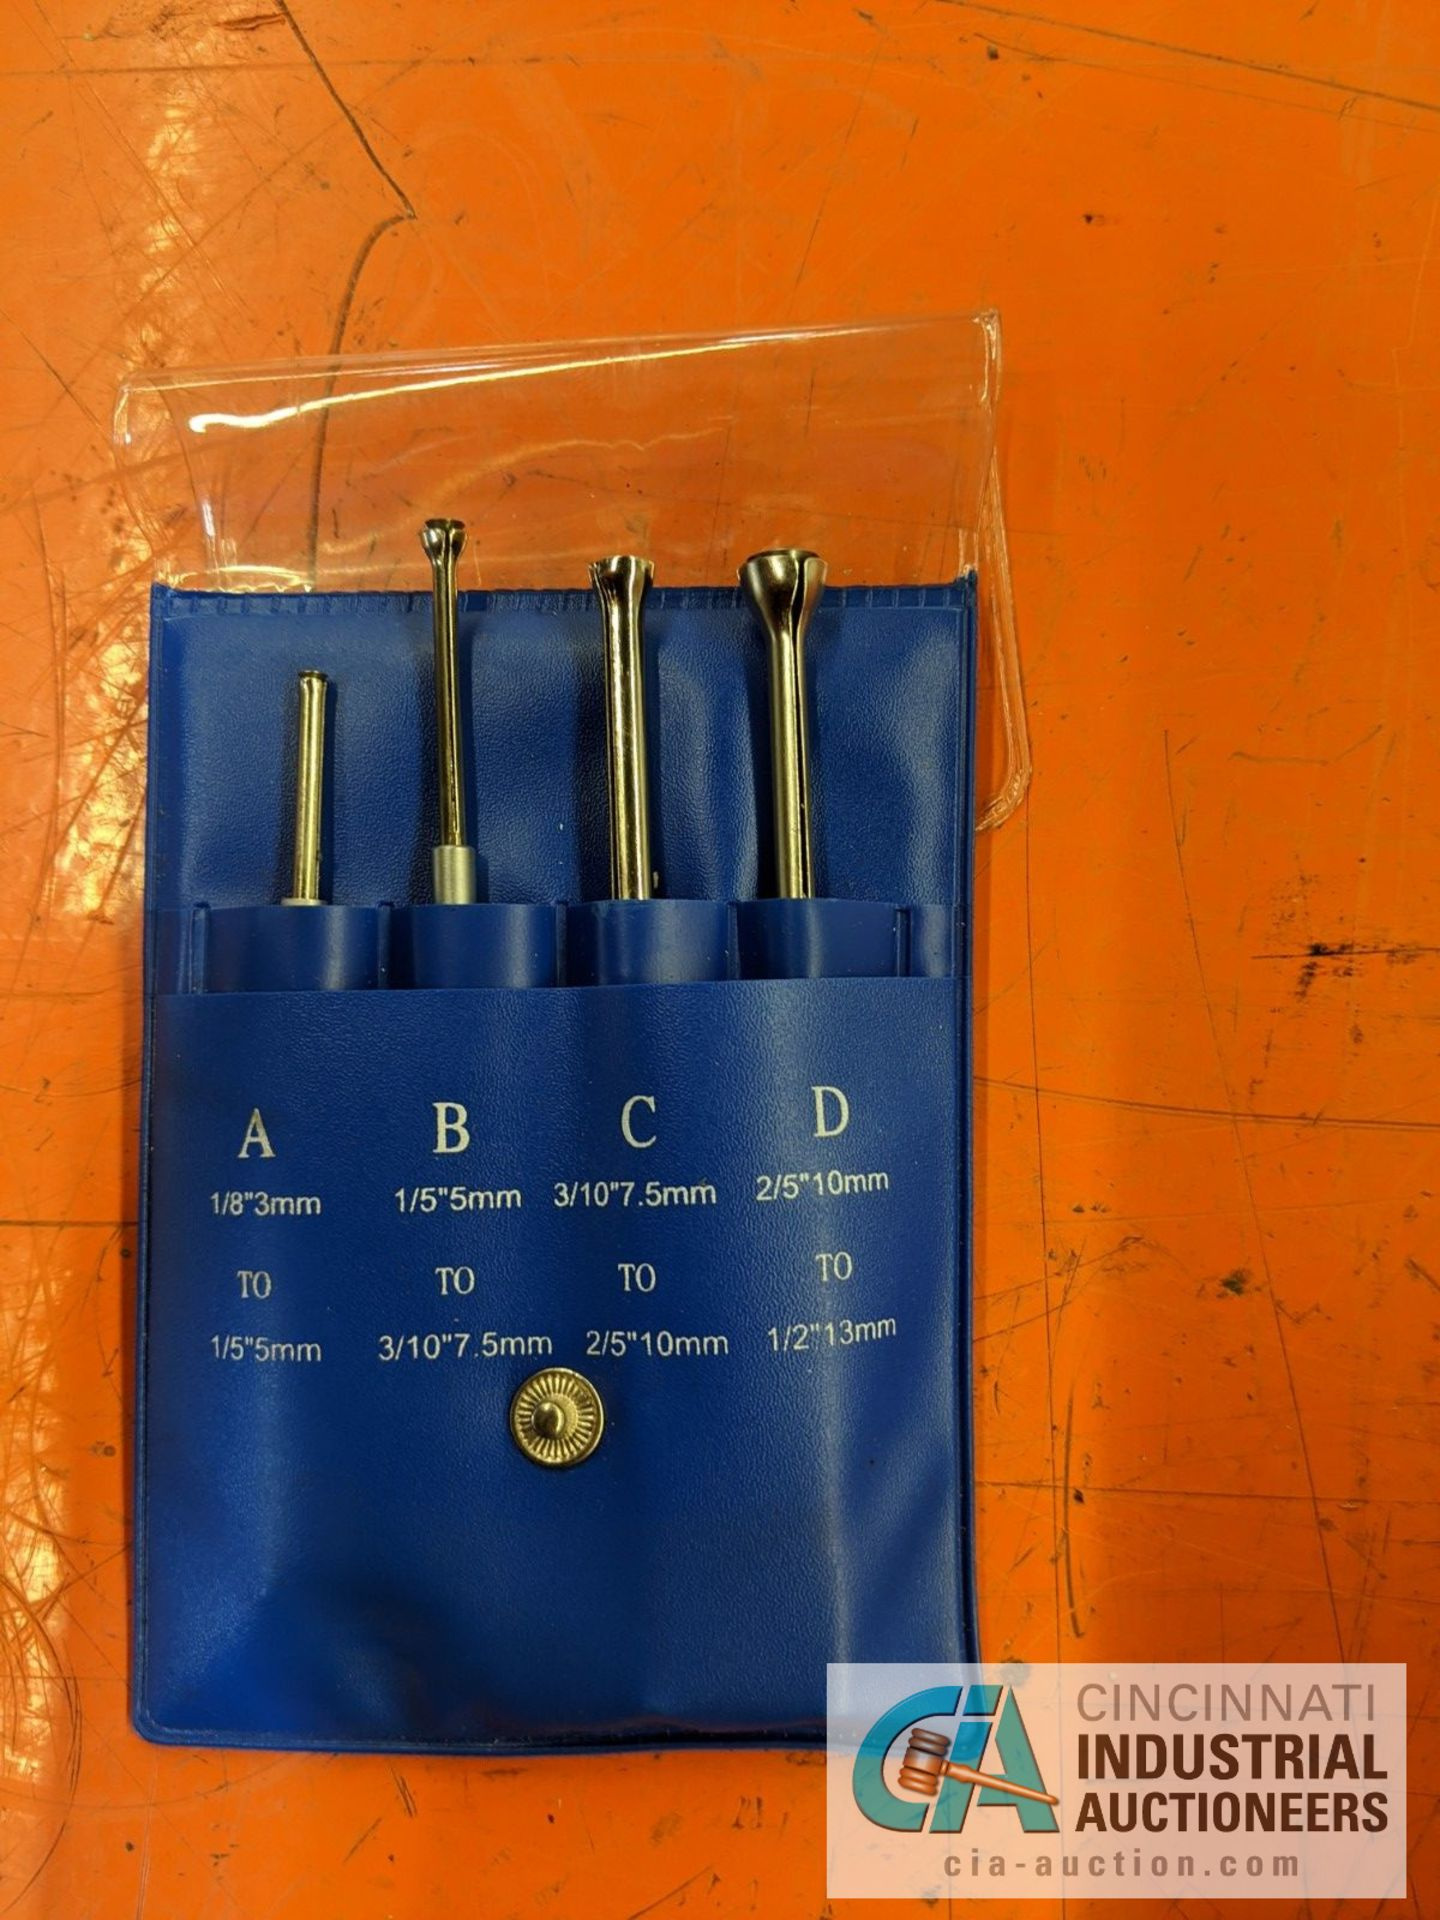 (LOT) INSPECTION; T-HANDLE MICROMETERS, PARALLEL SET AND Z-AXIAL PRESET GAUGE - Image 6 of 8